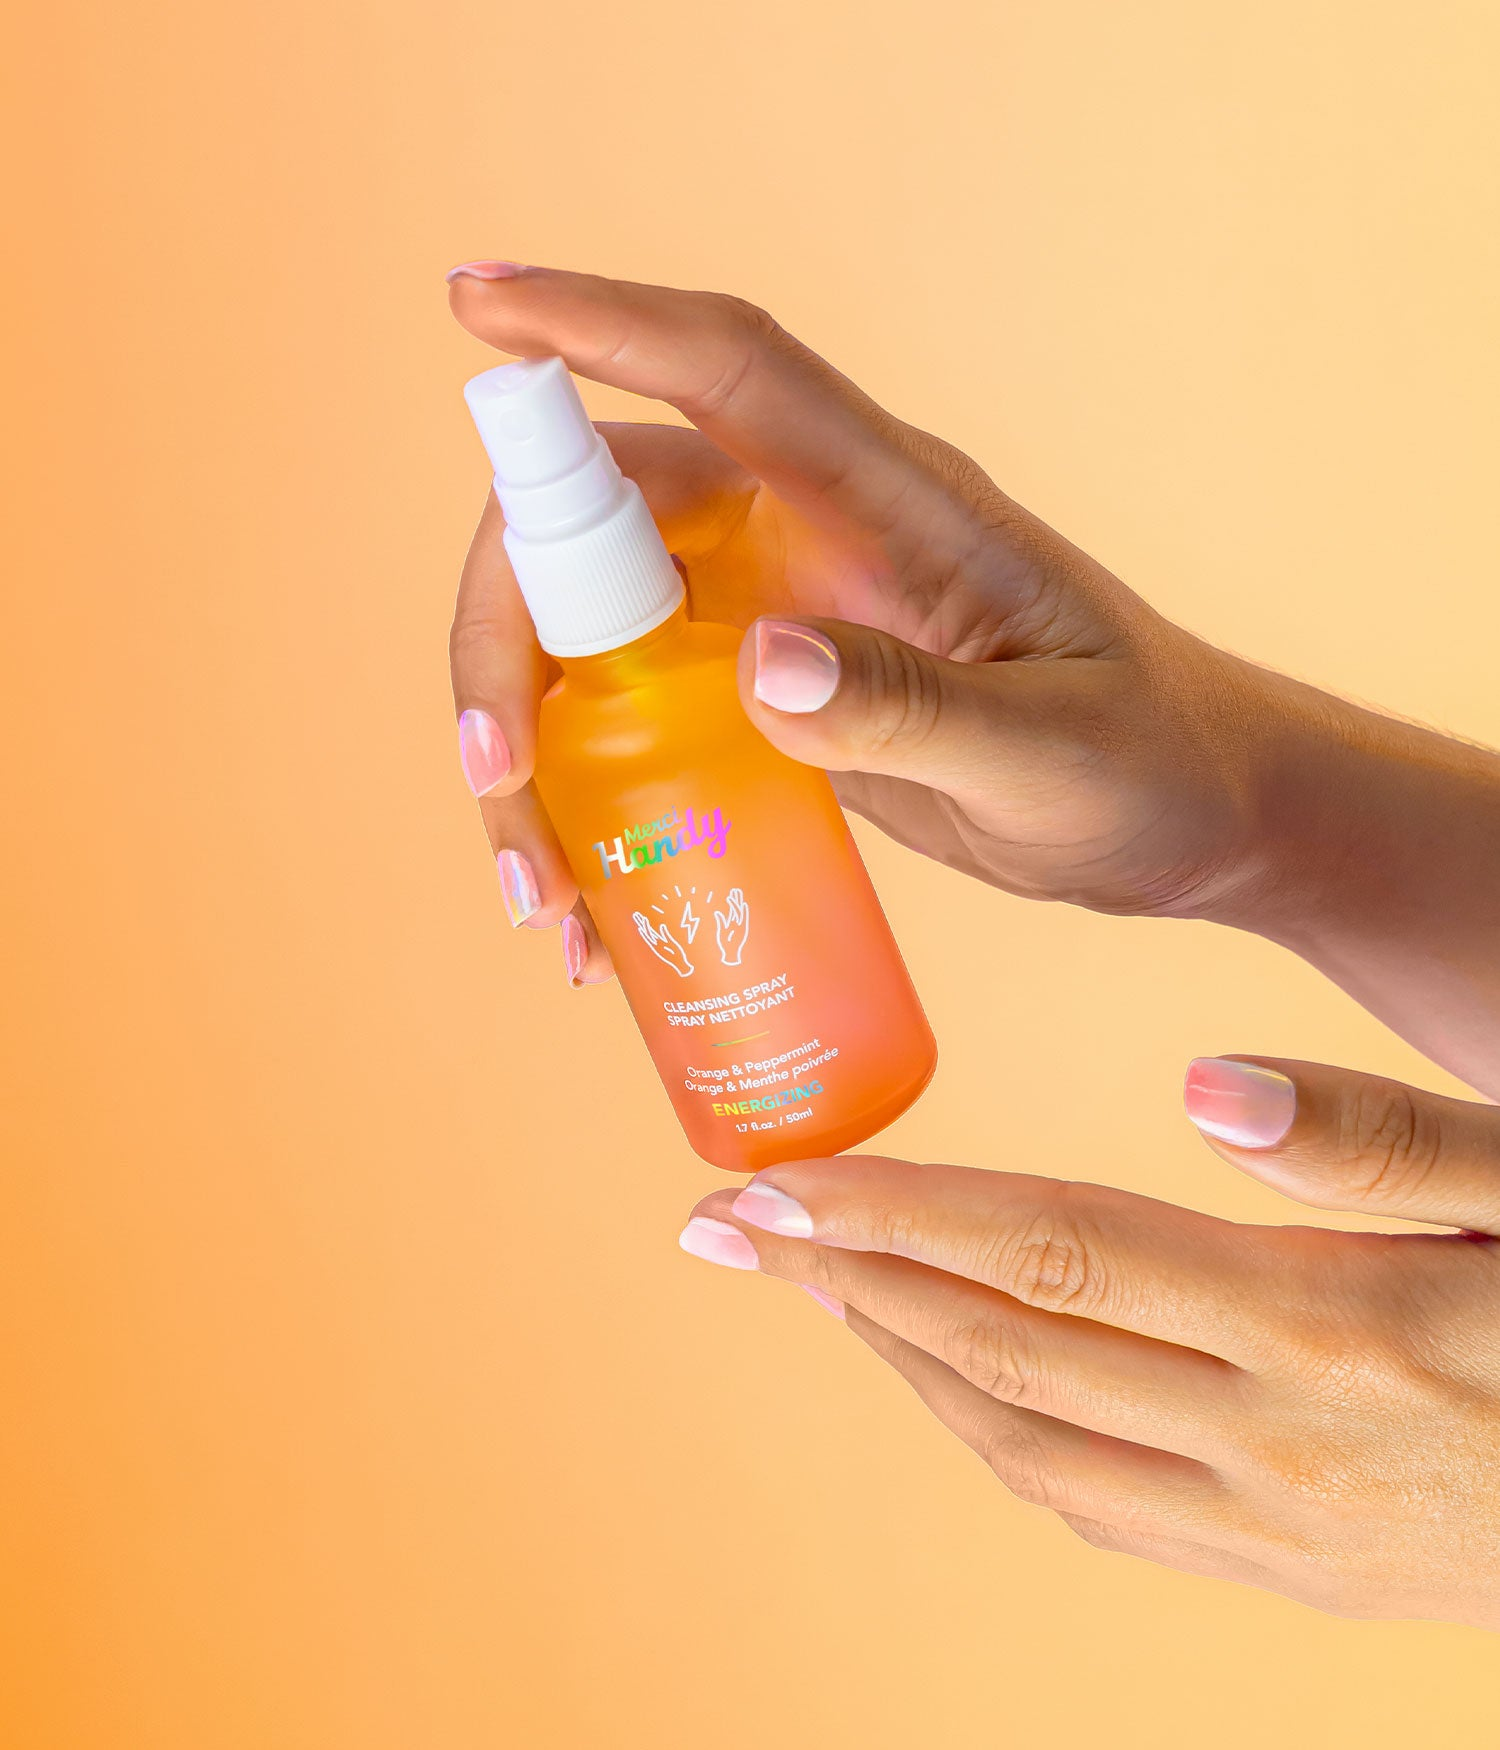 Energizing Cleansing Spray